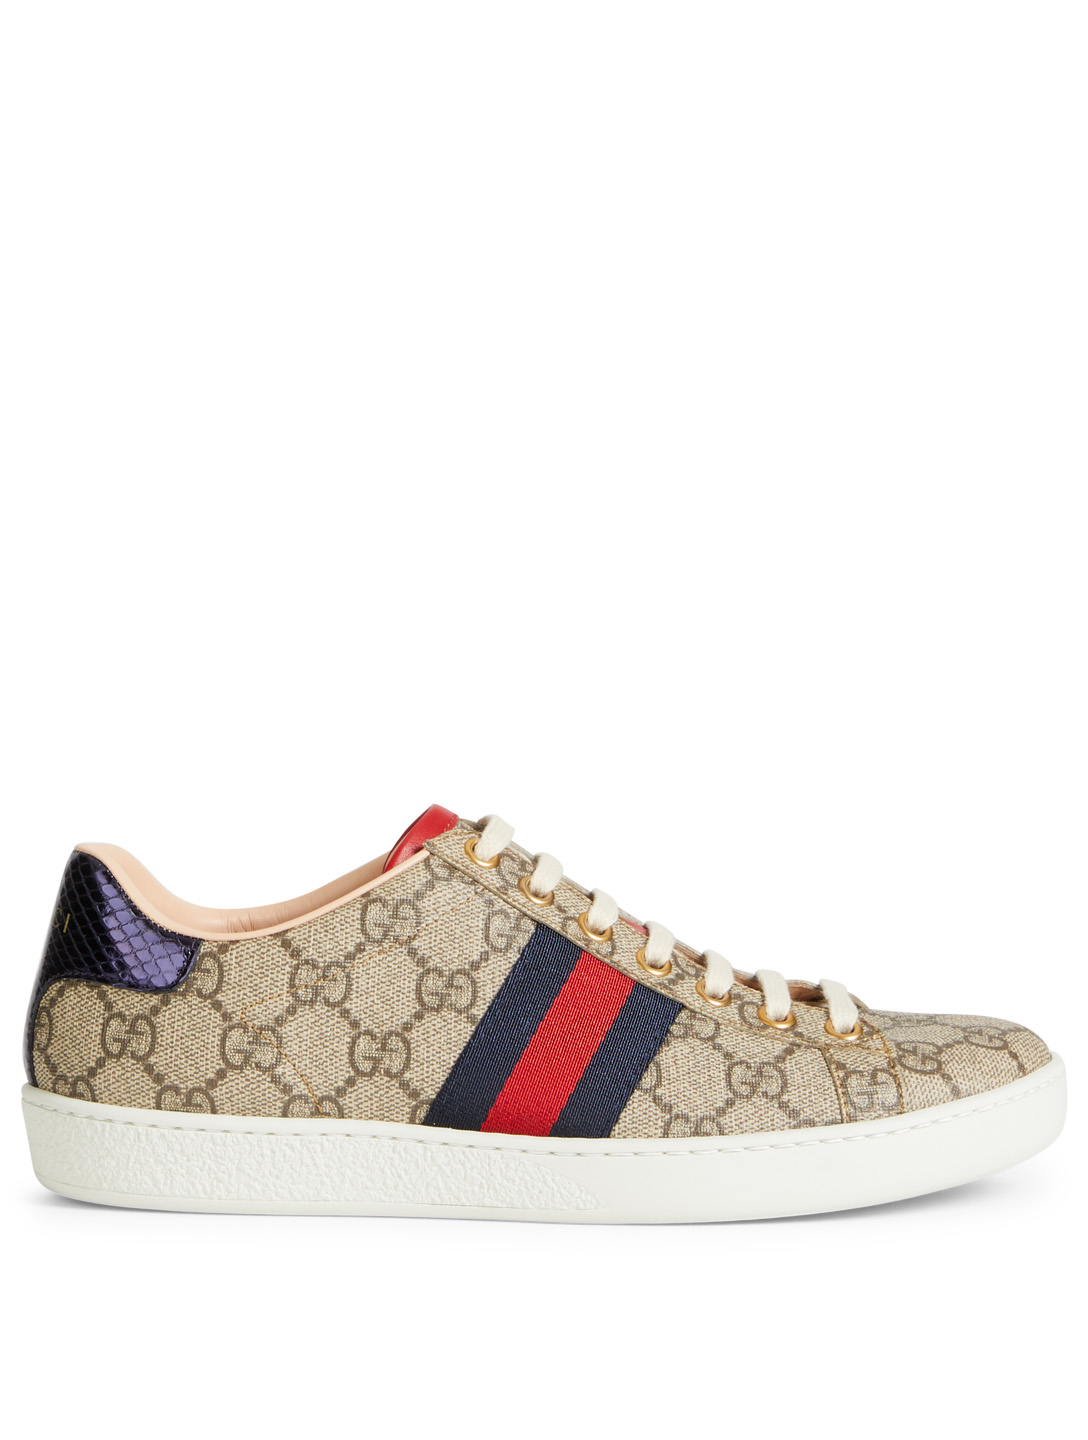 6e27f1a3d6a GUCCI Ace GG Supreme Sneakers Womens Neutral ...